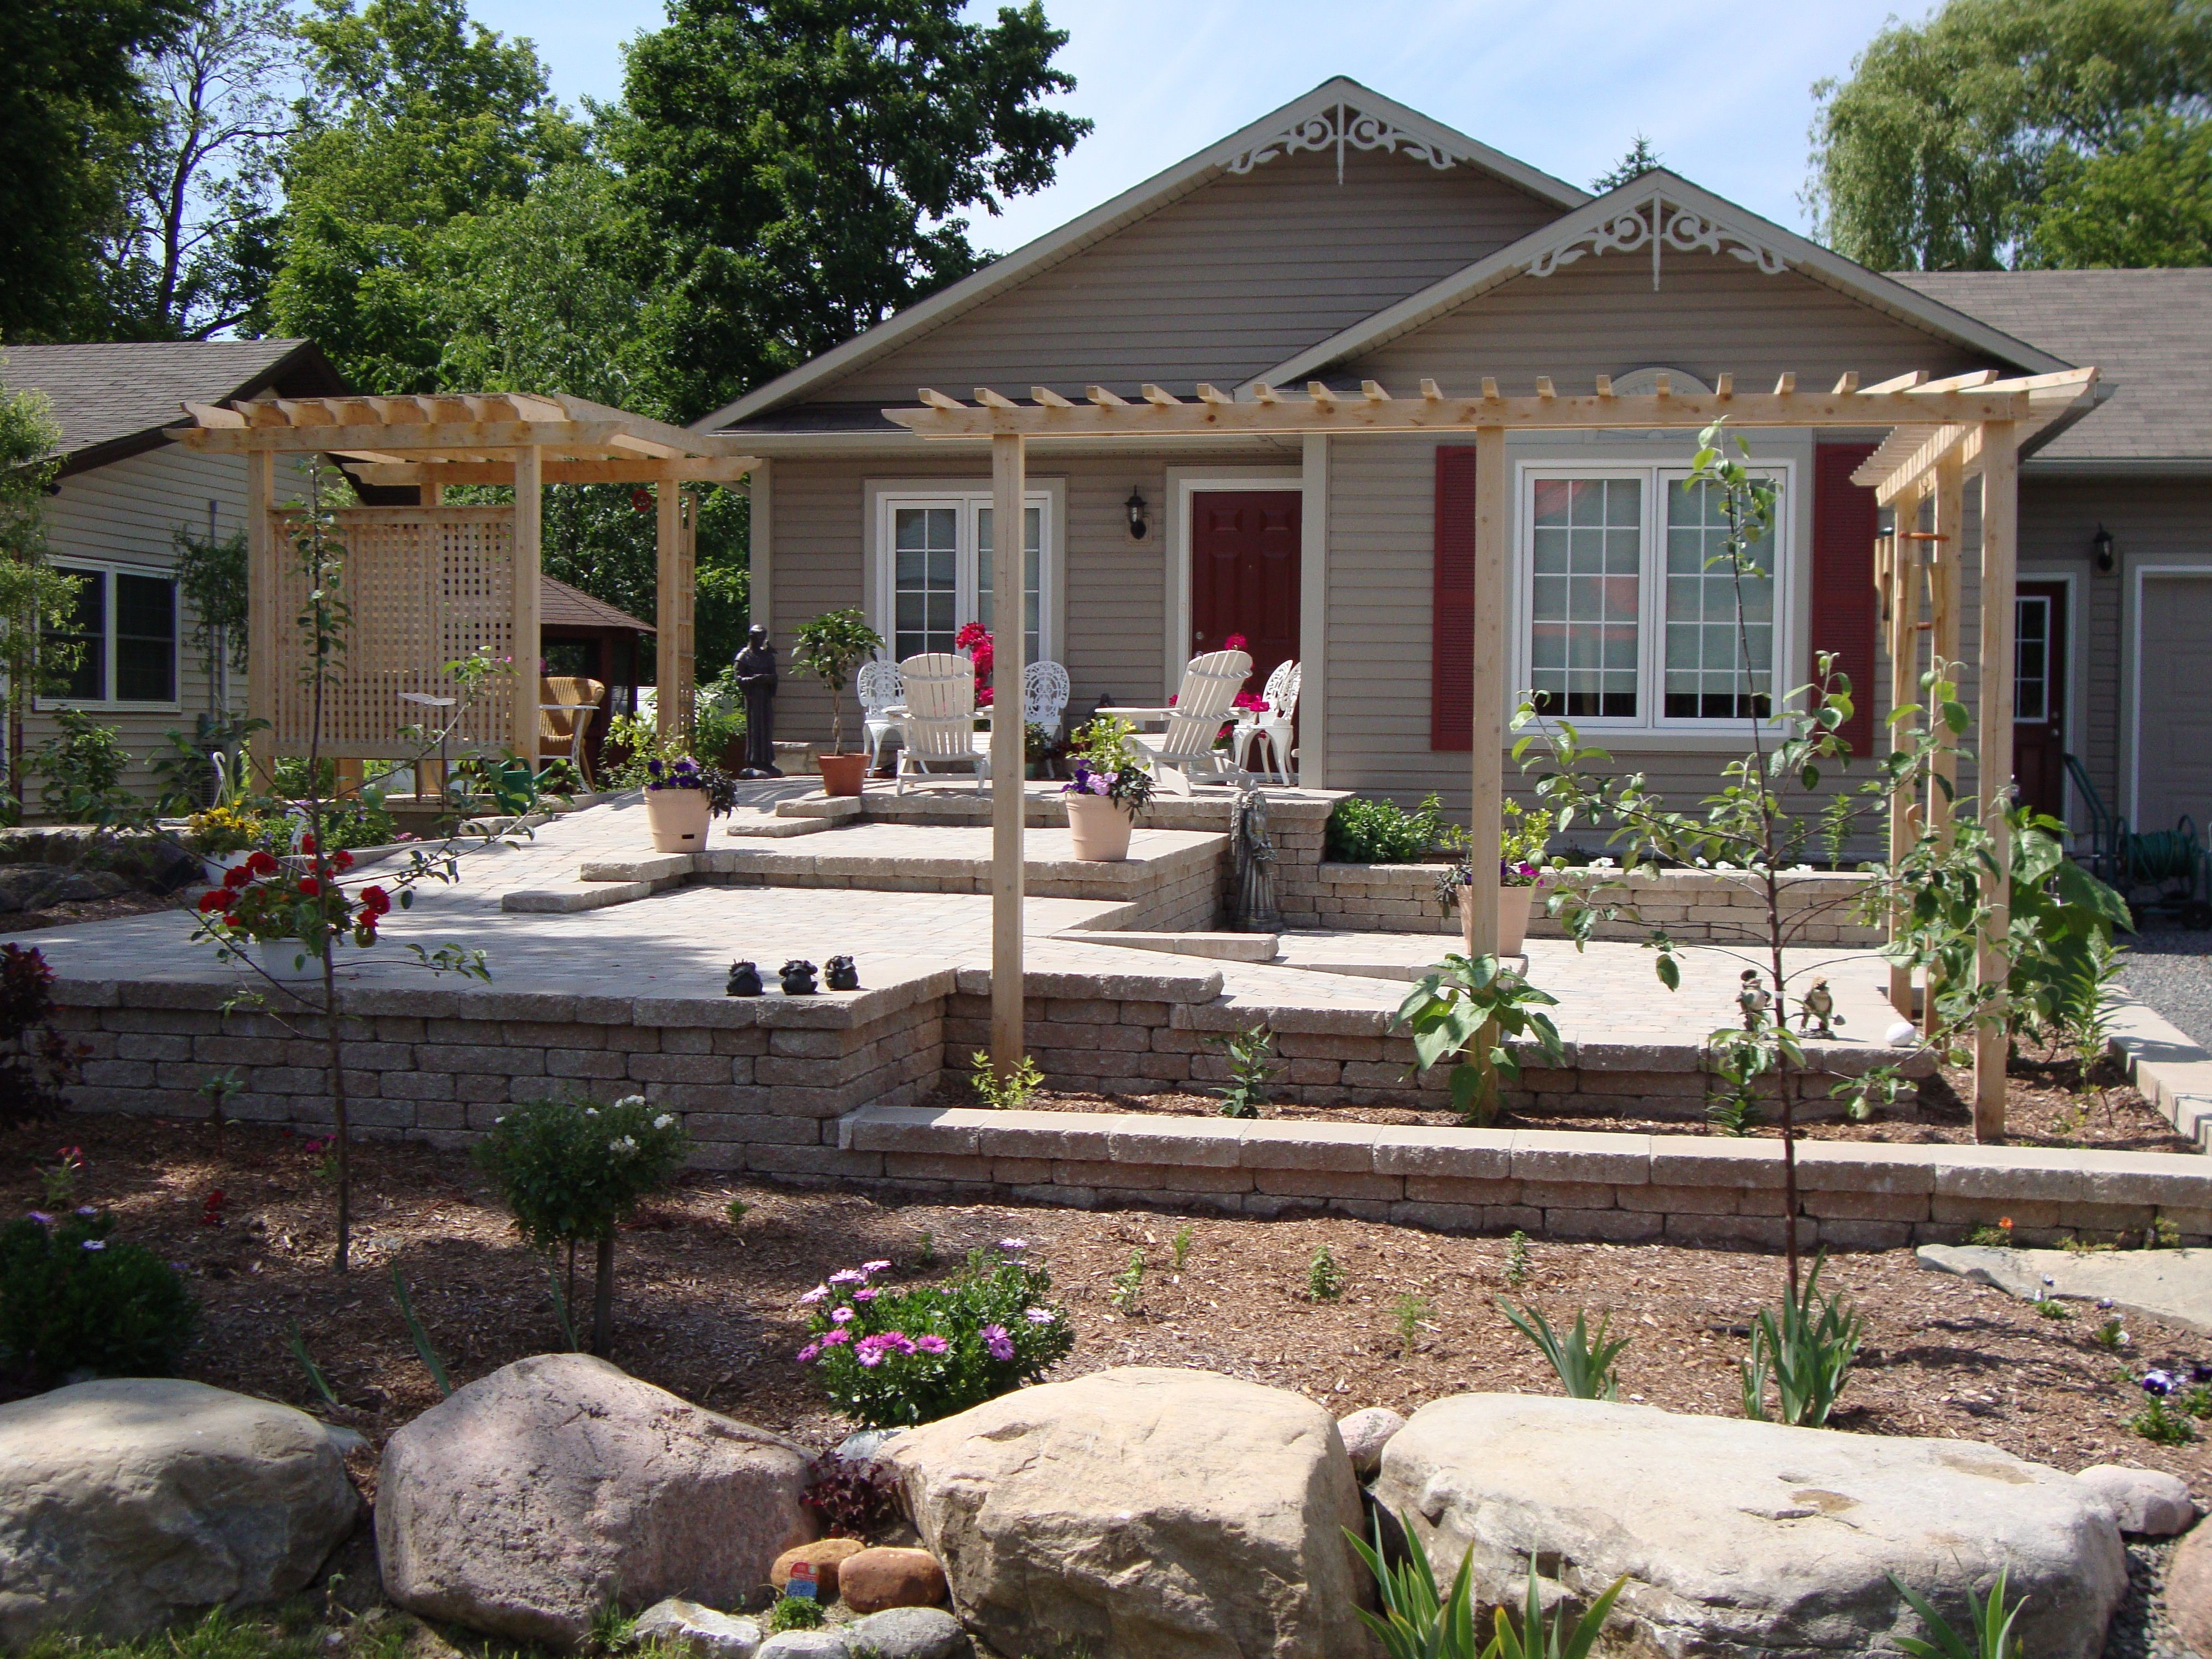 accessible ramped interlock front entry with gardens installed